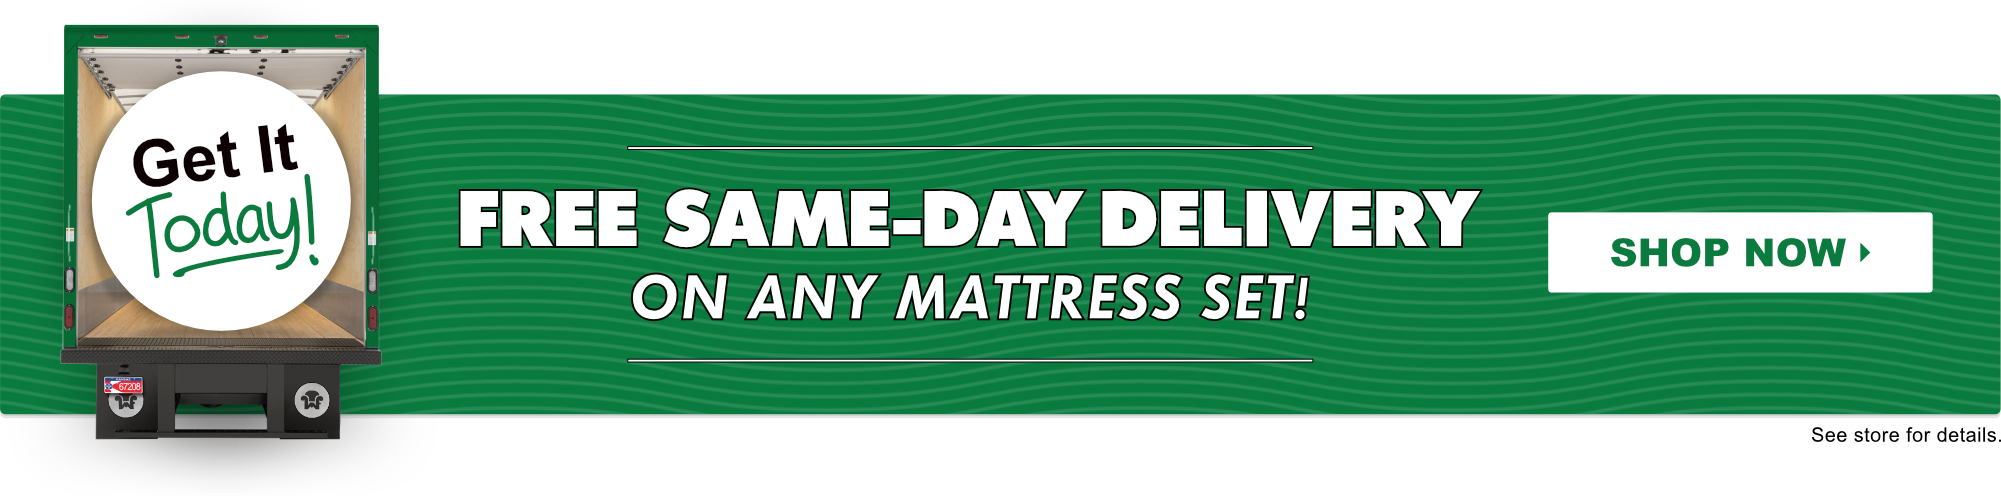 Same-Day Mattress Delivery in Wichita